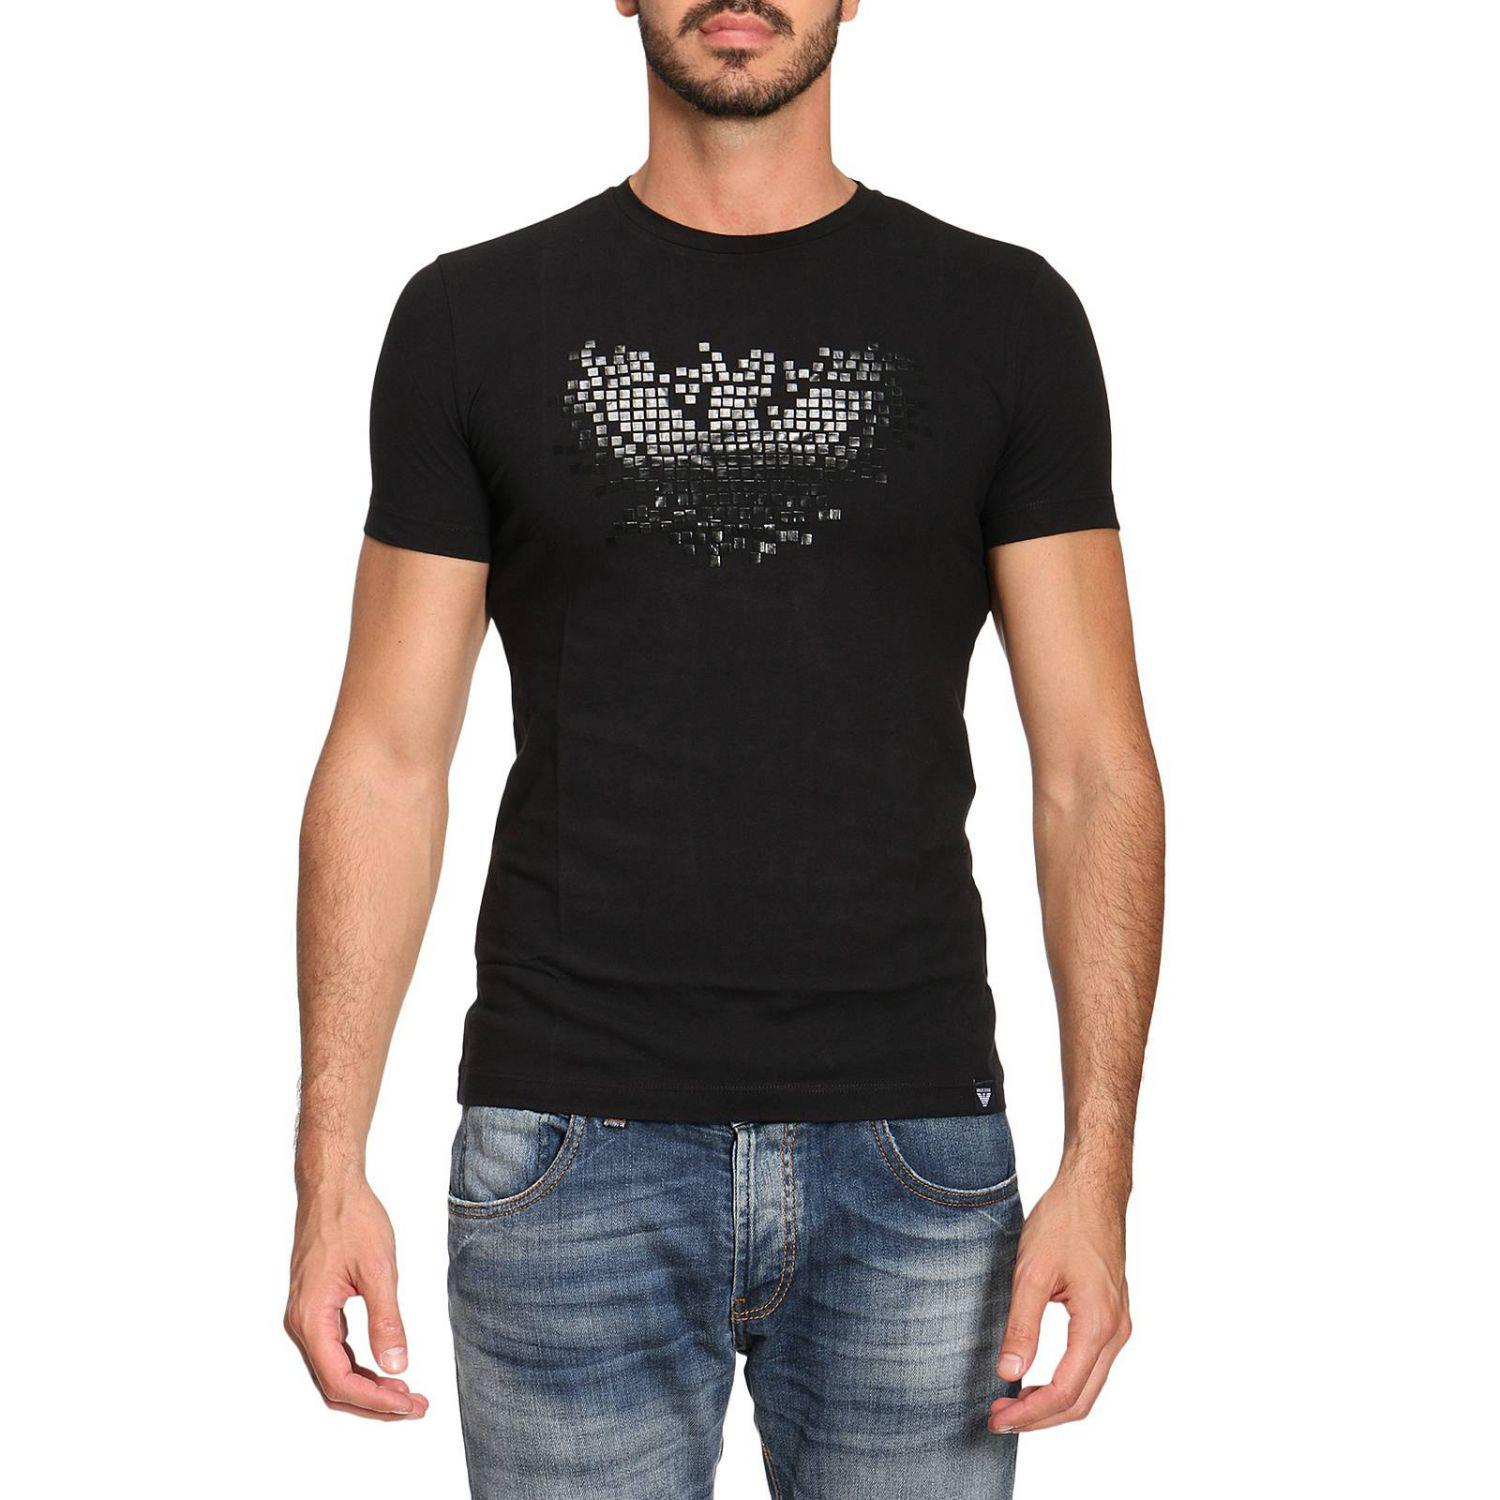 Rolf S Nyc Lyst Armani Jeans T Shirt Men In Black For Men